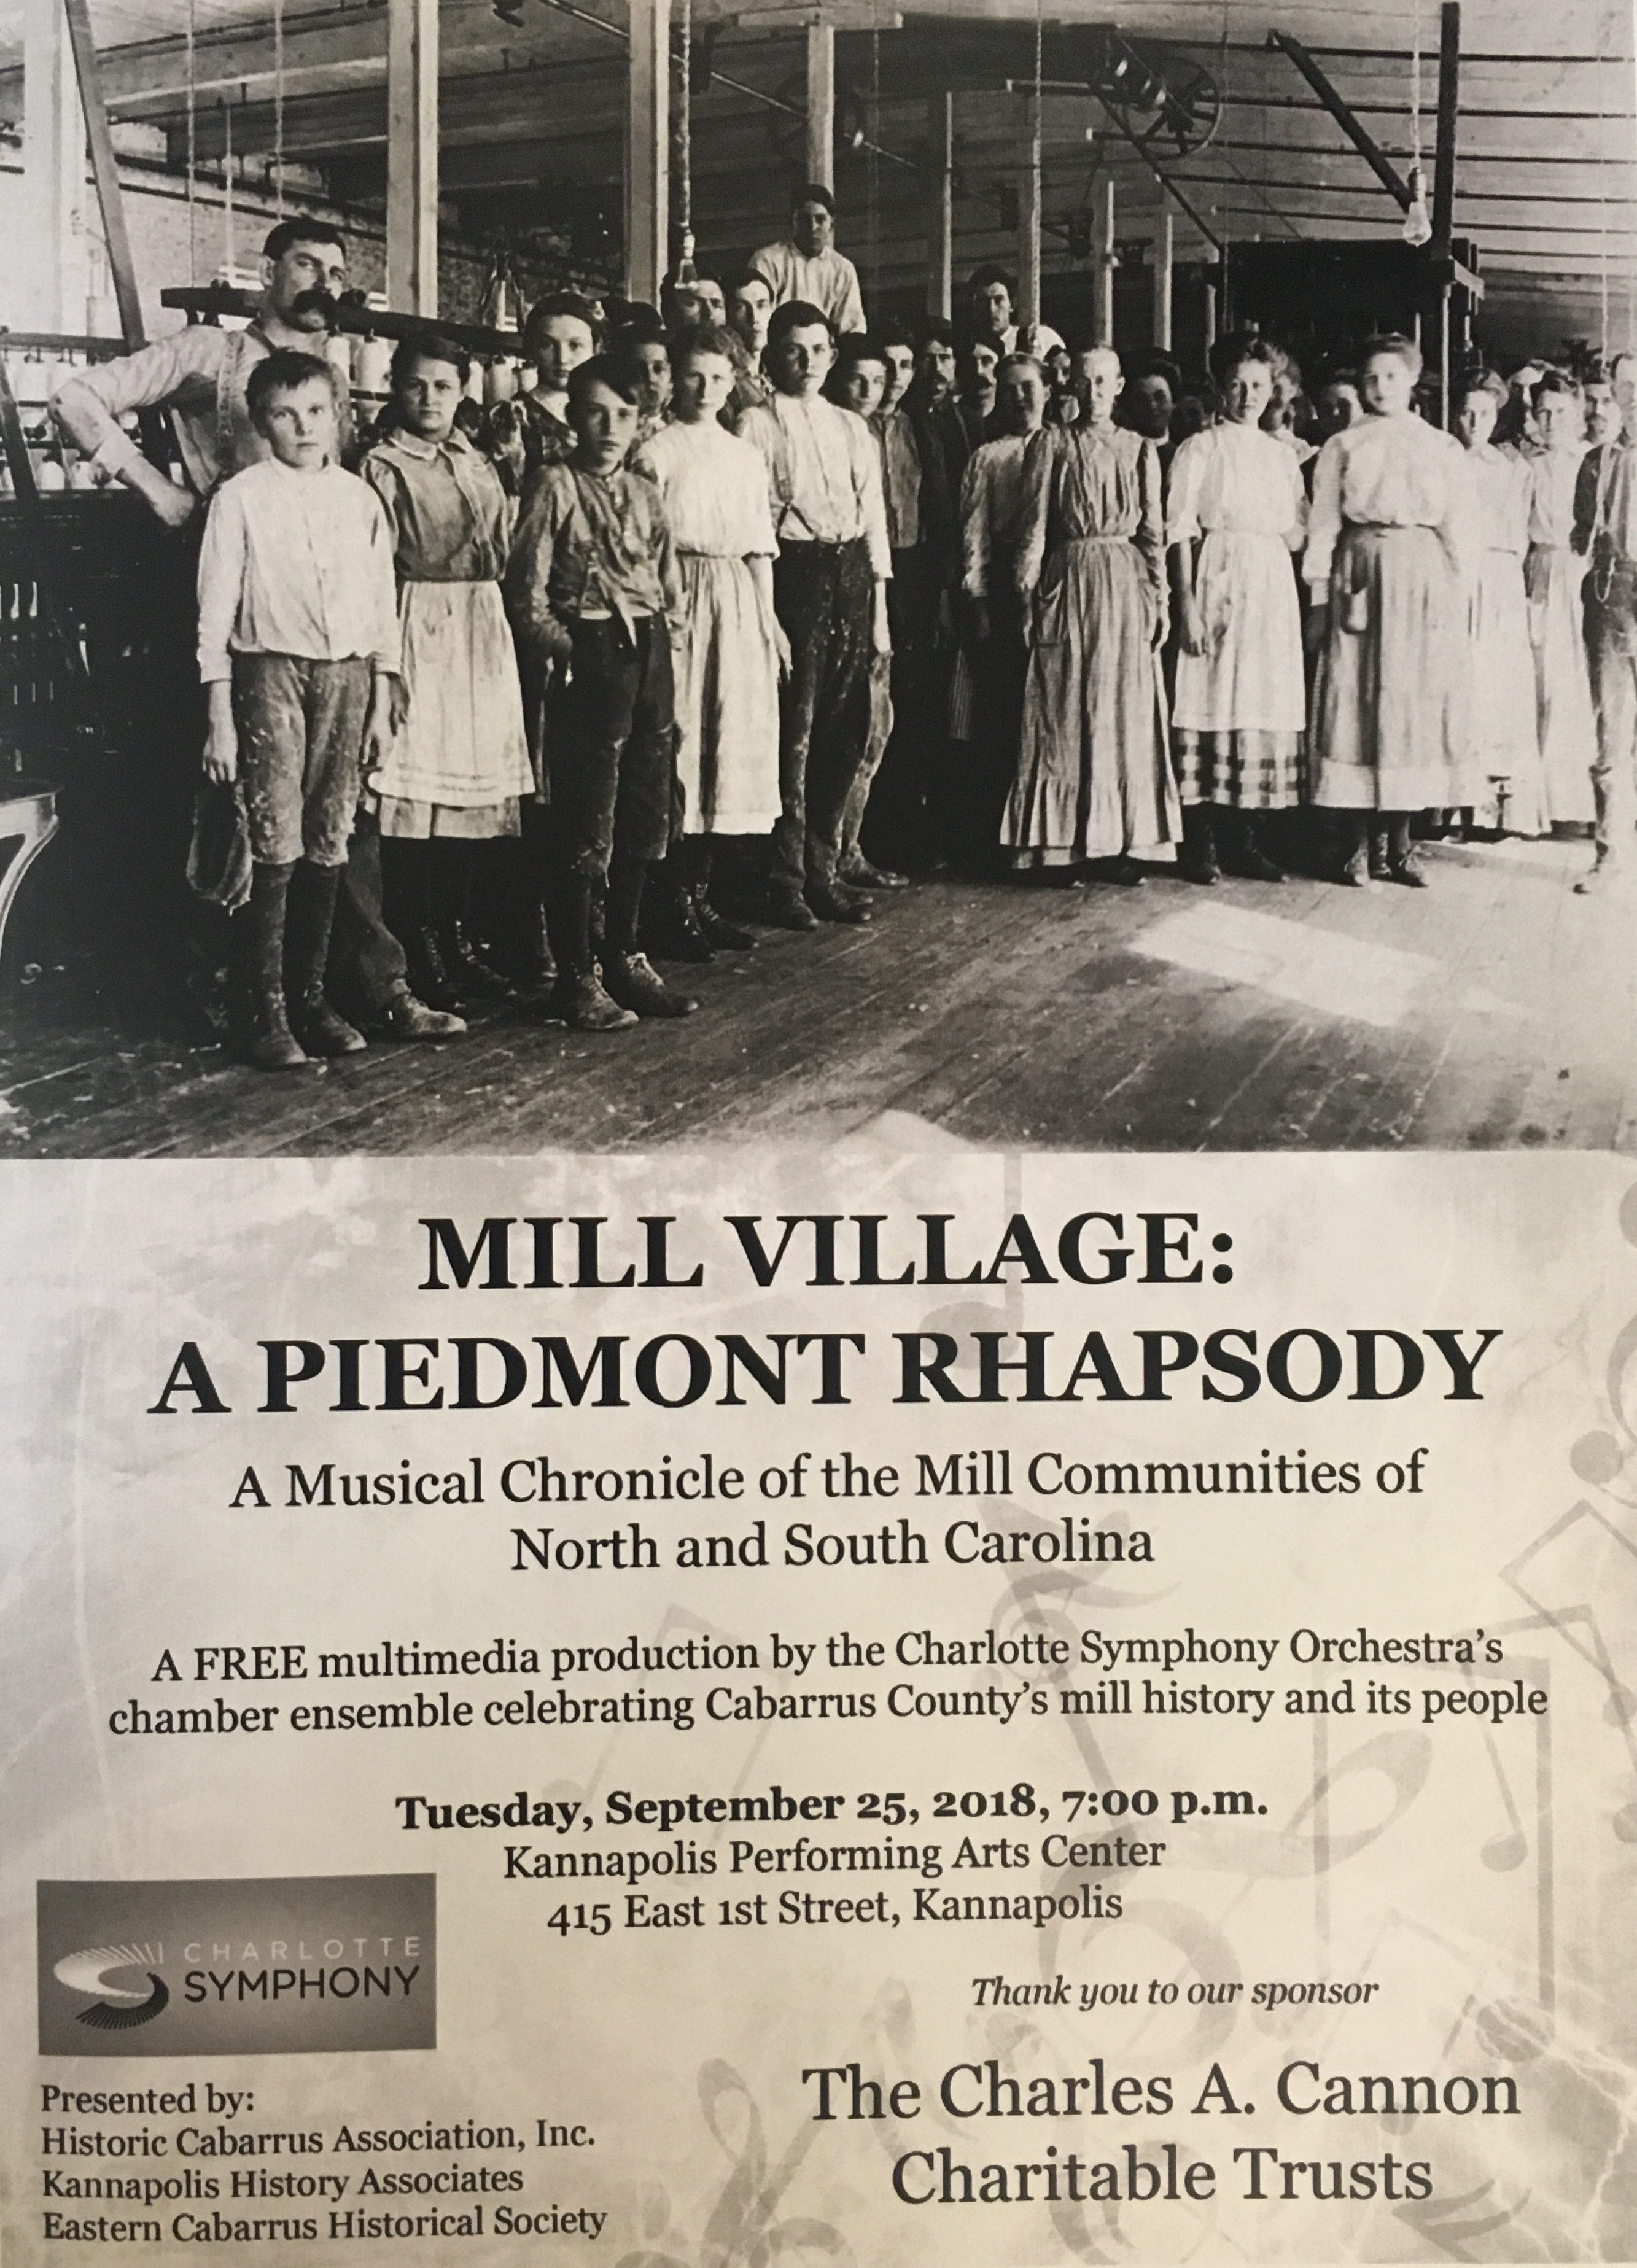 ... the histories and memories of Cabarrus County textile mill workers by hosting the Charlotte Symphony for a free one-night event on September 25th ... & historiccabarrus u2013 Historic Cabarrus Association Inc.